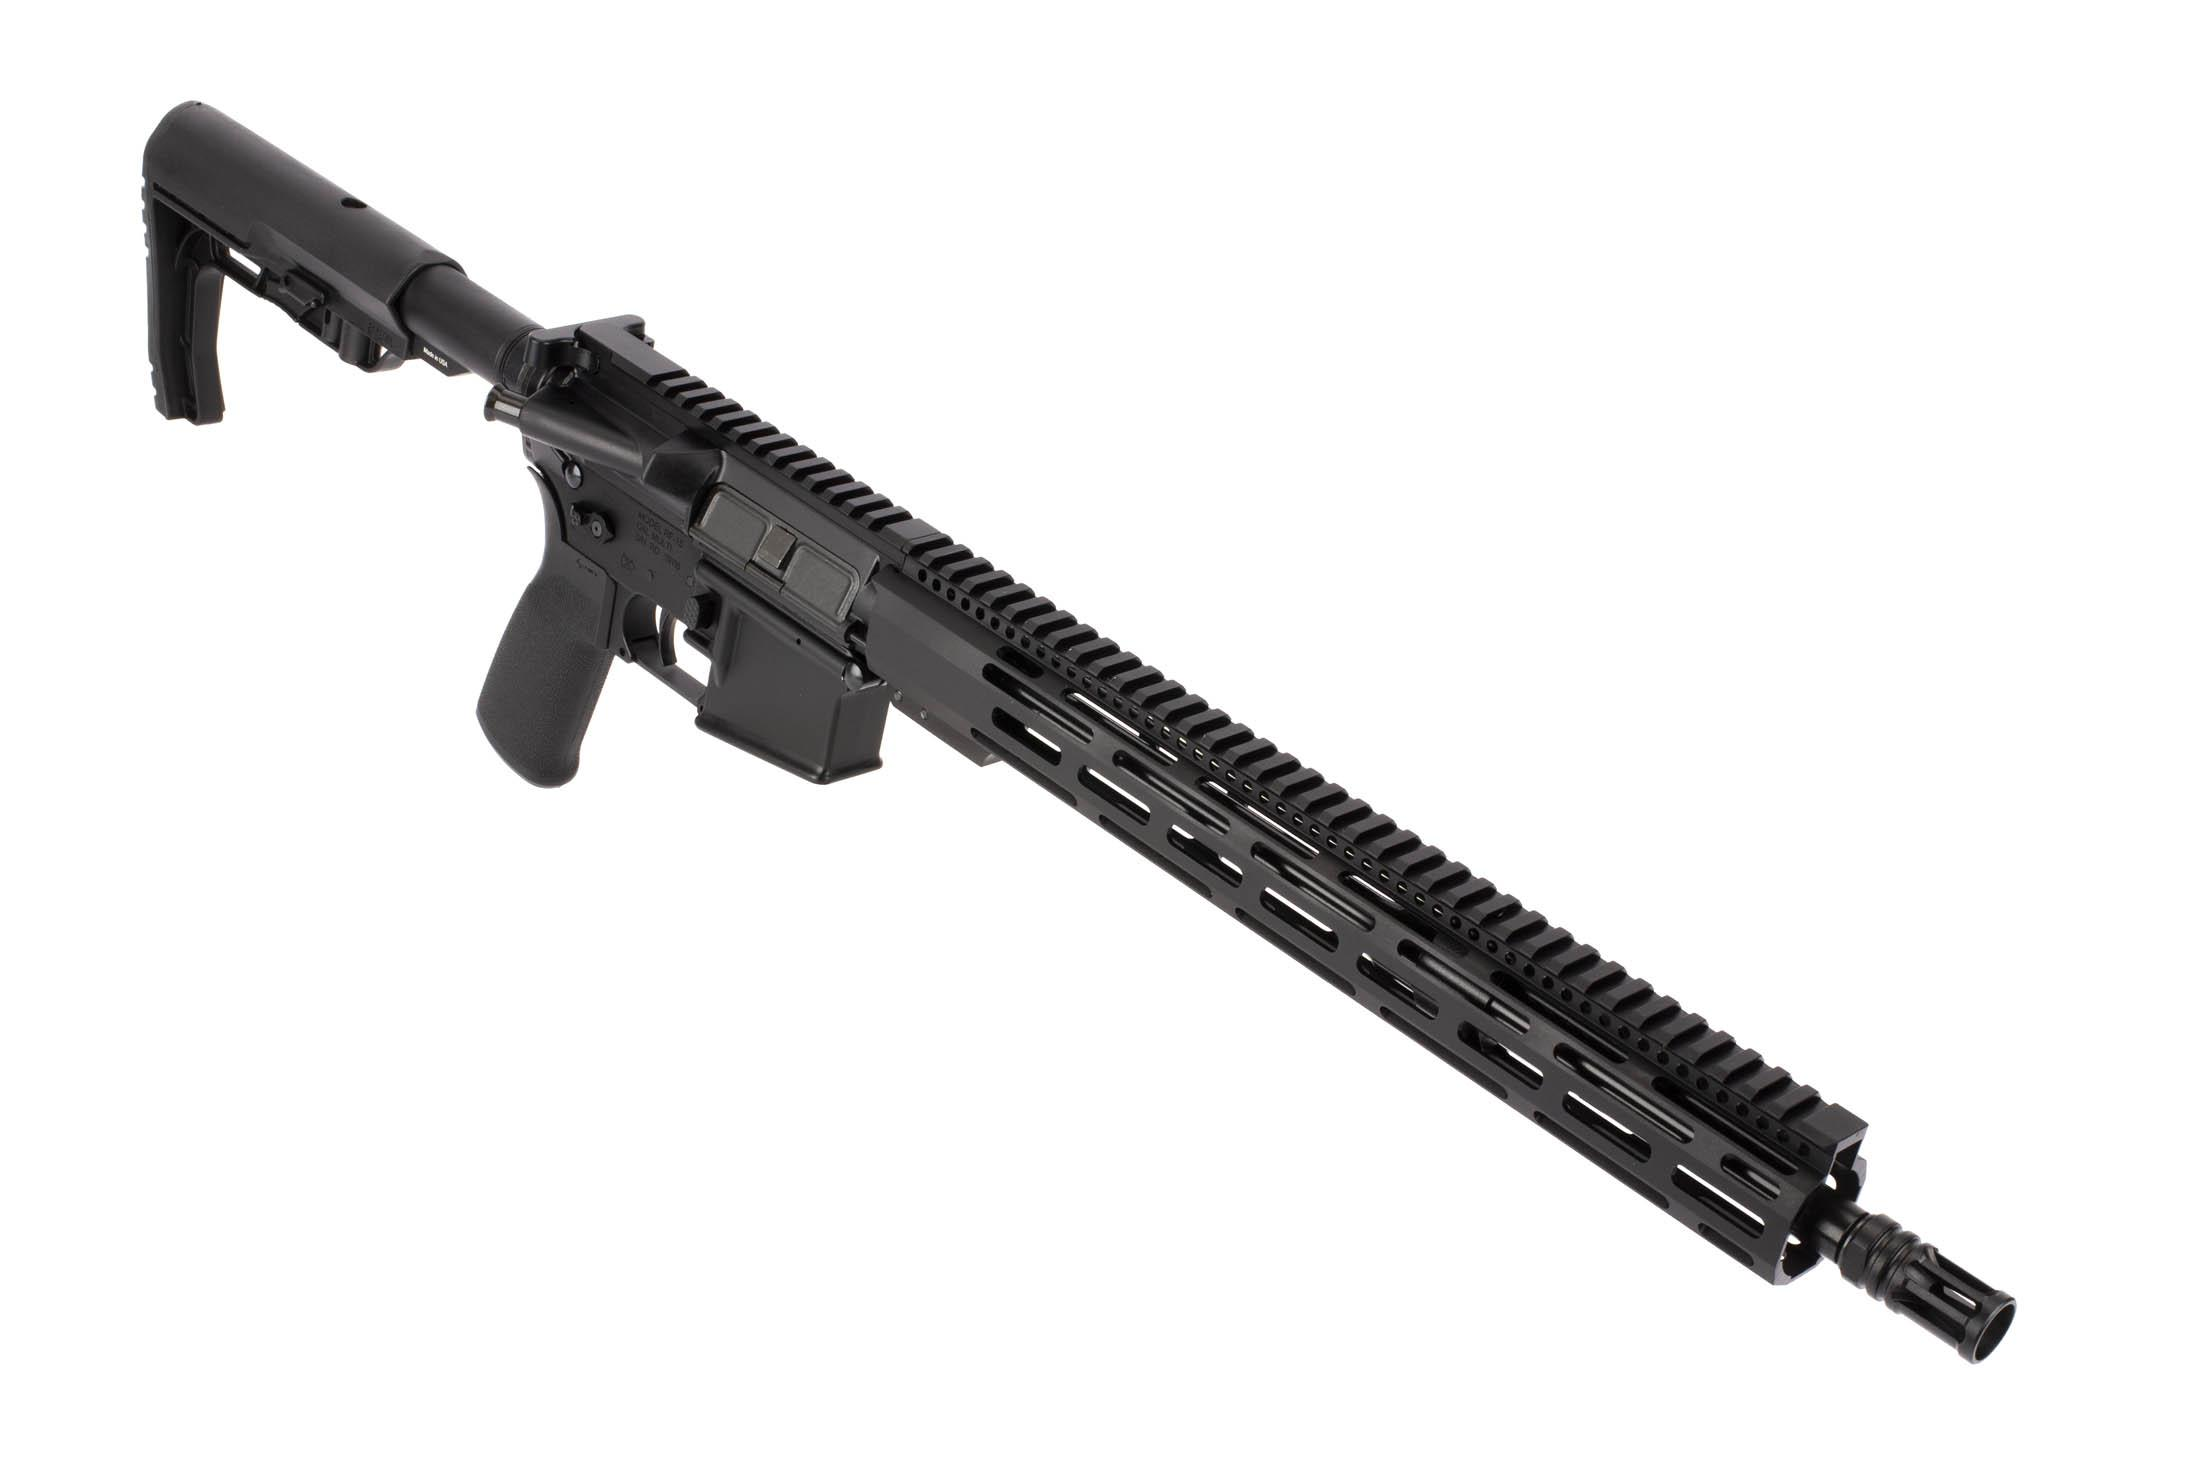 Radical Firearms complete 16in 5.56 NATO AR-15 with mid-length SOCOM barrel, 15in M-LOK Rail and MFT furniture